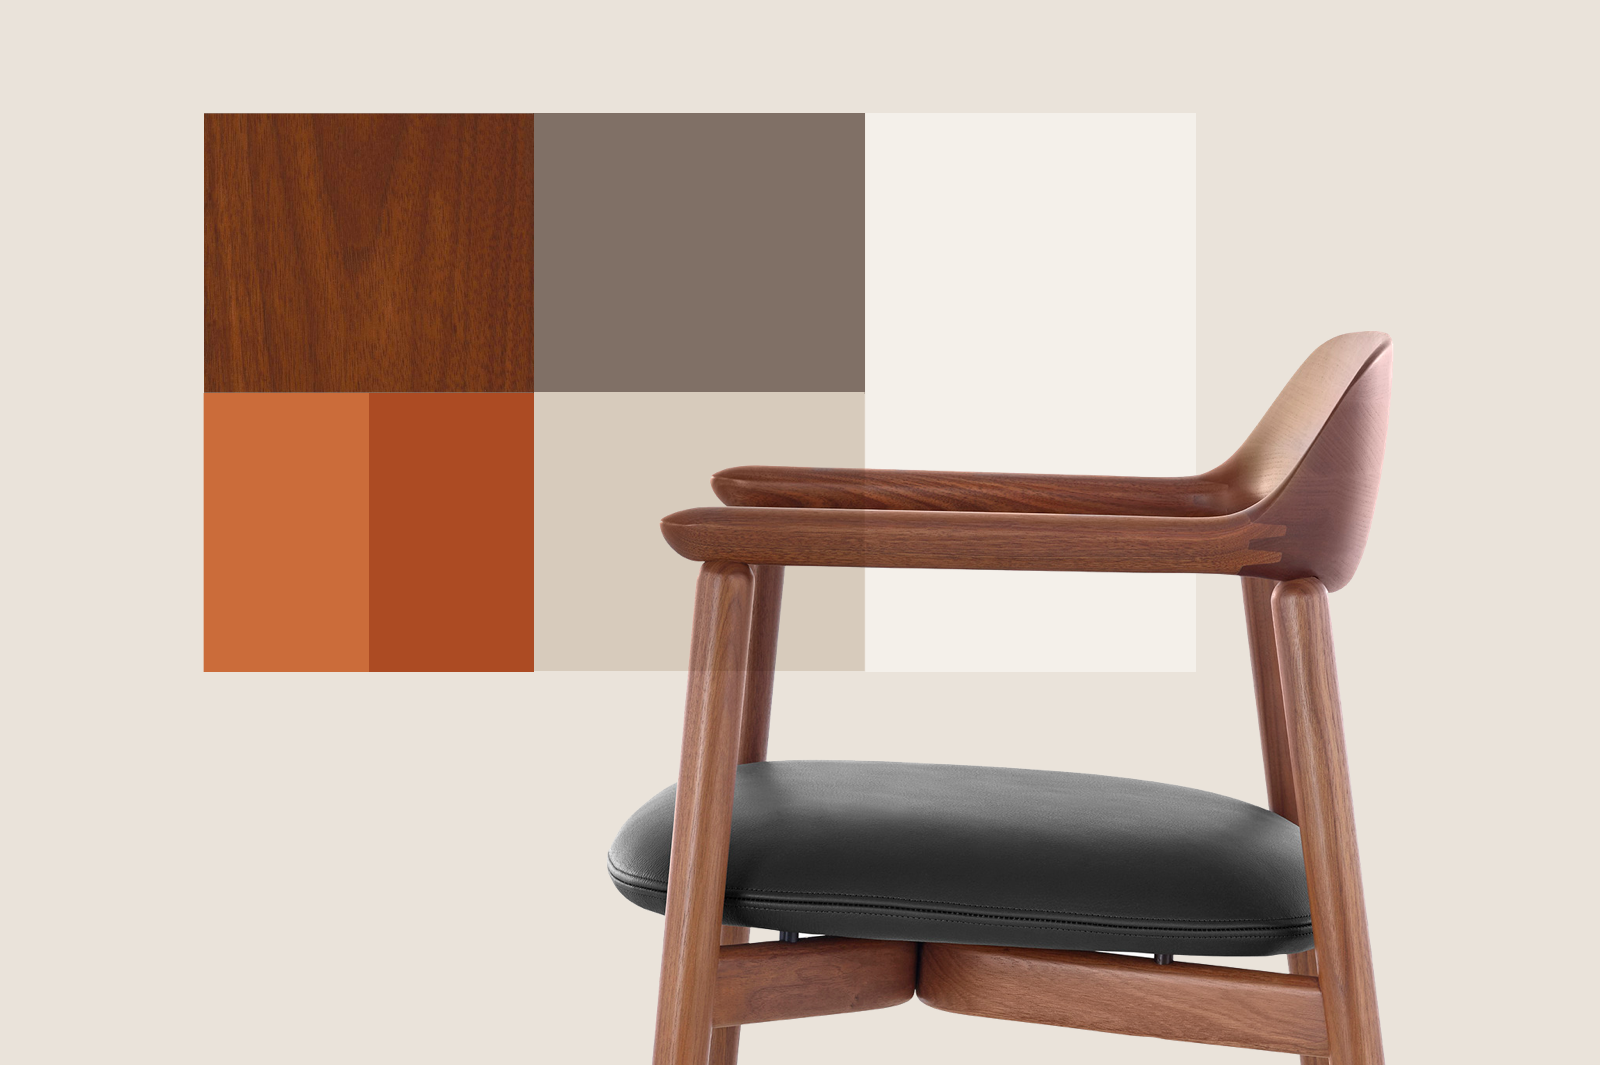 Product design color palette using Geiger brand colors  with Crosshatch Side Chair.